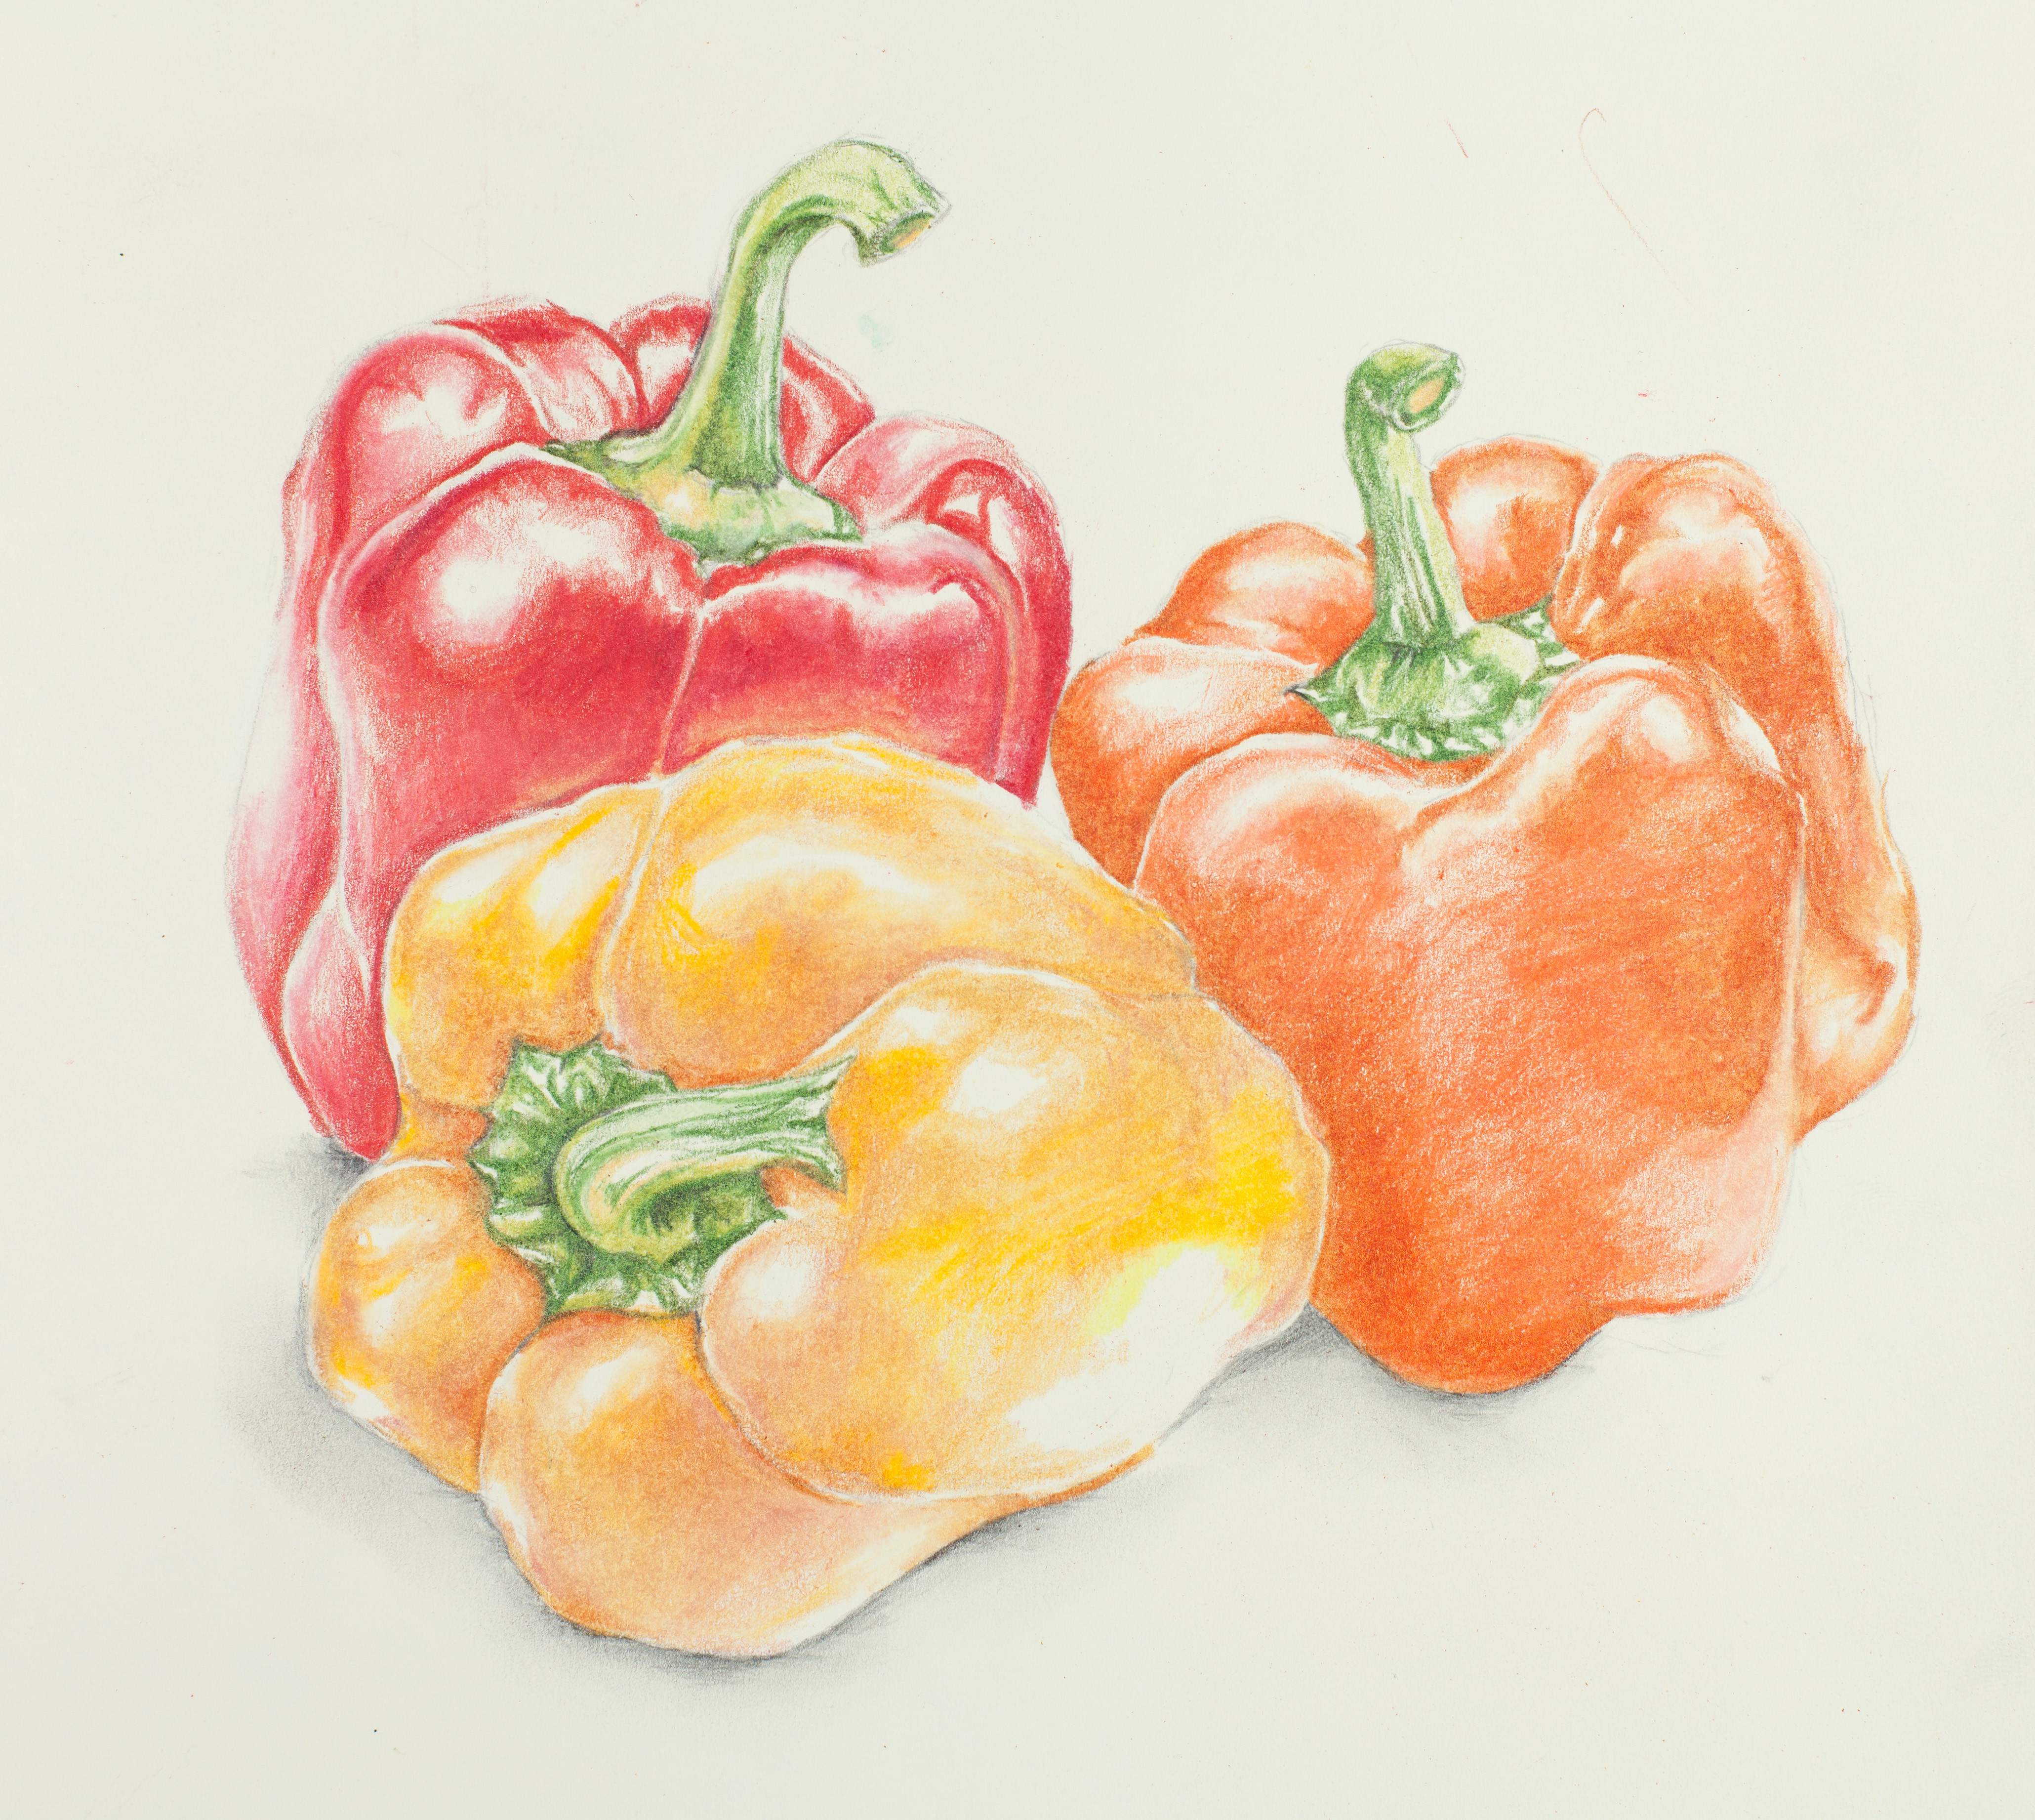 Fruit & Vegetable Still Life – Carrolyn Lakowski Illustration